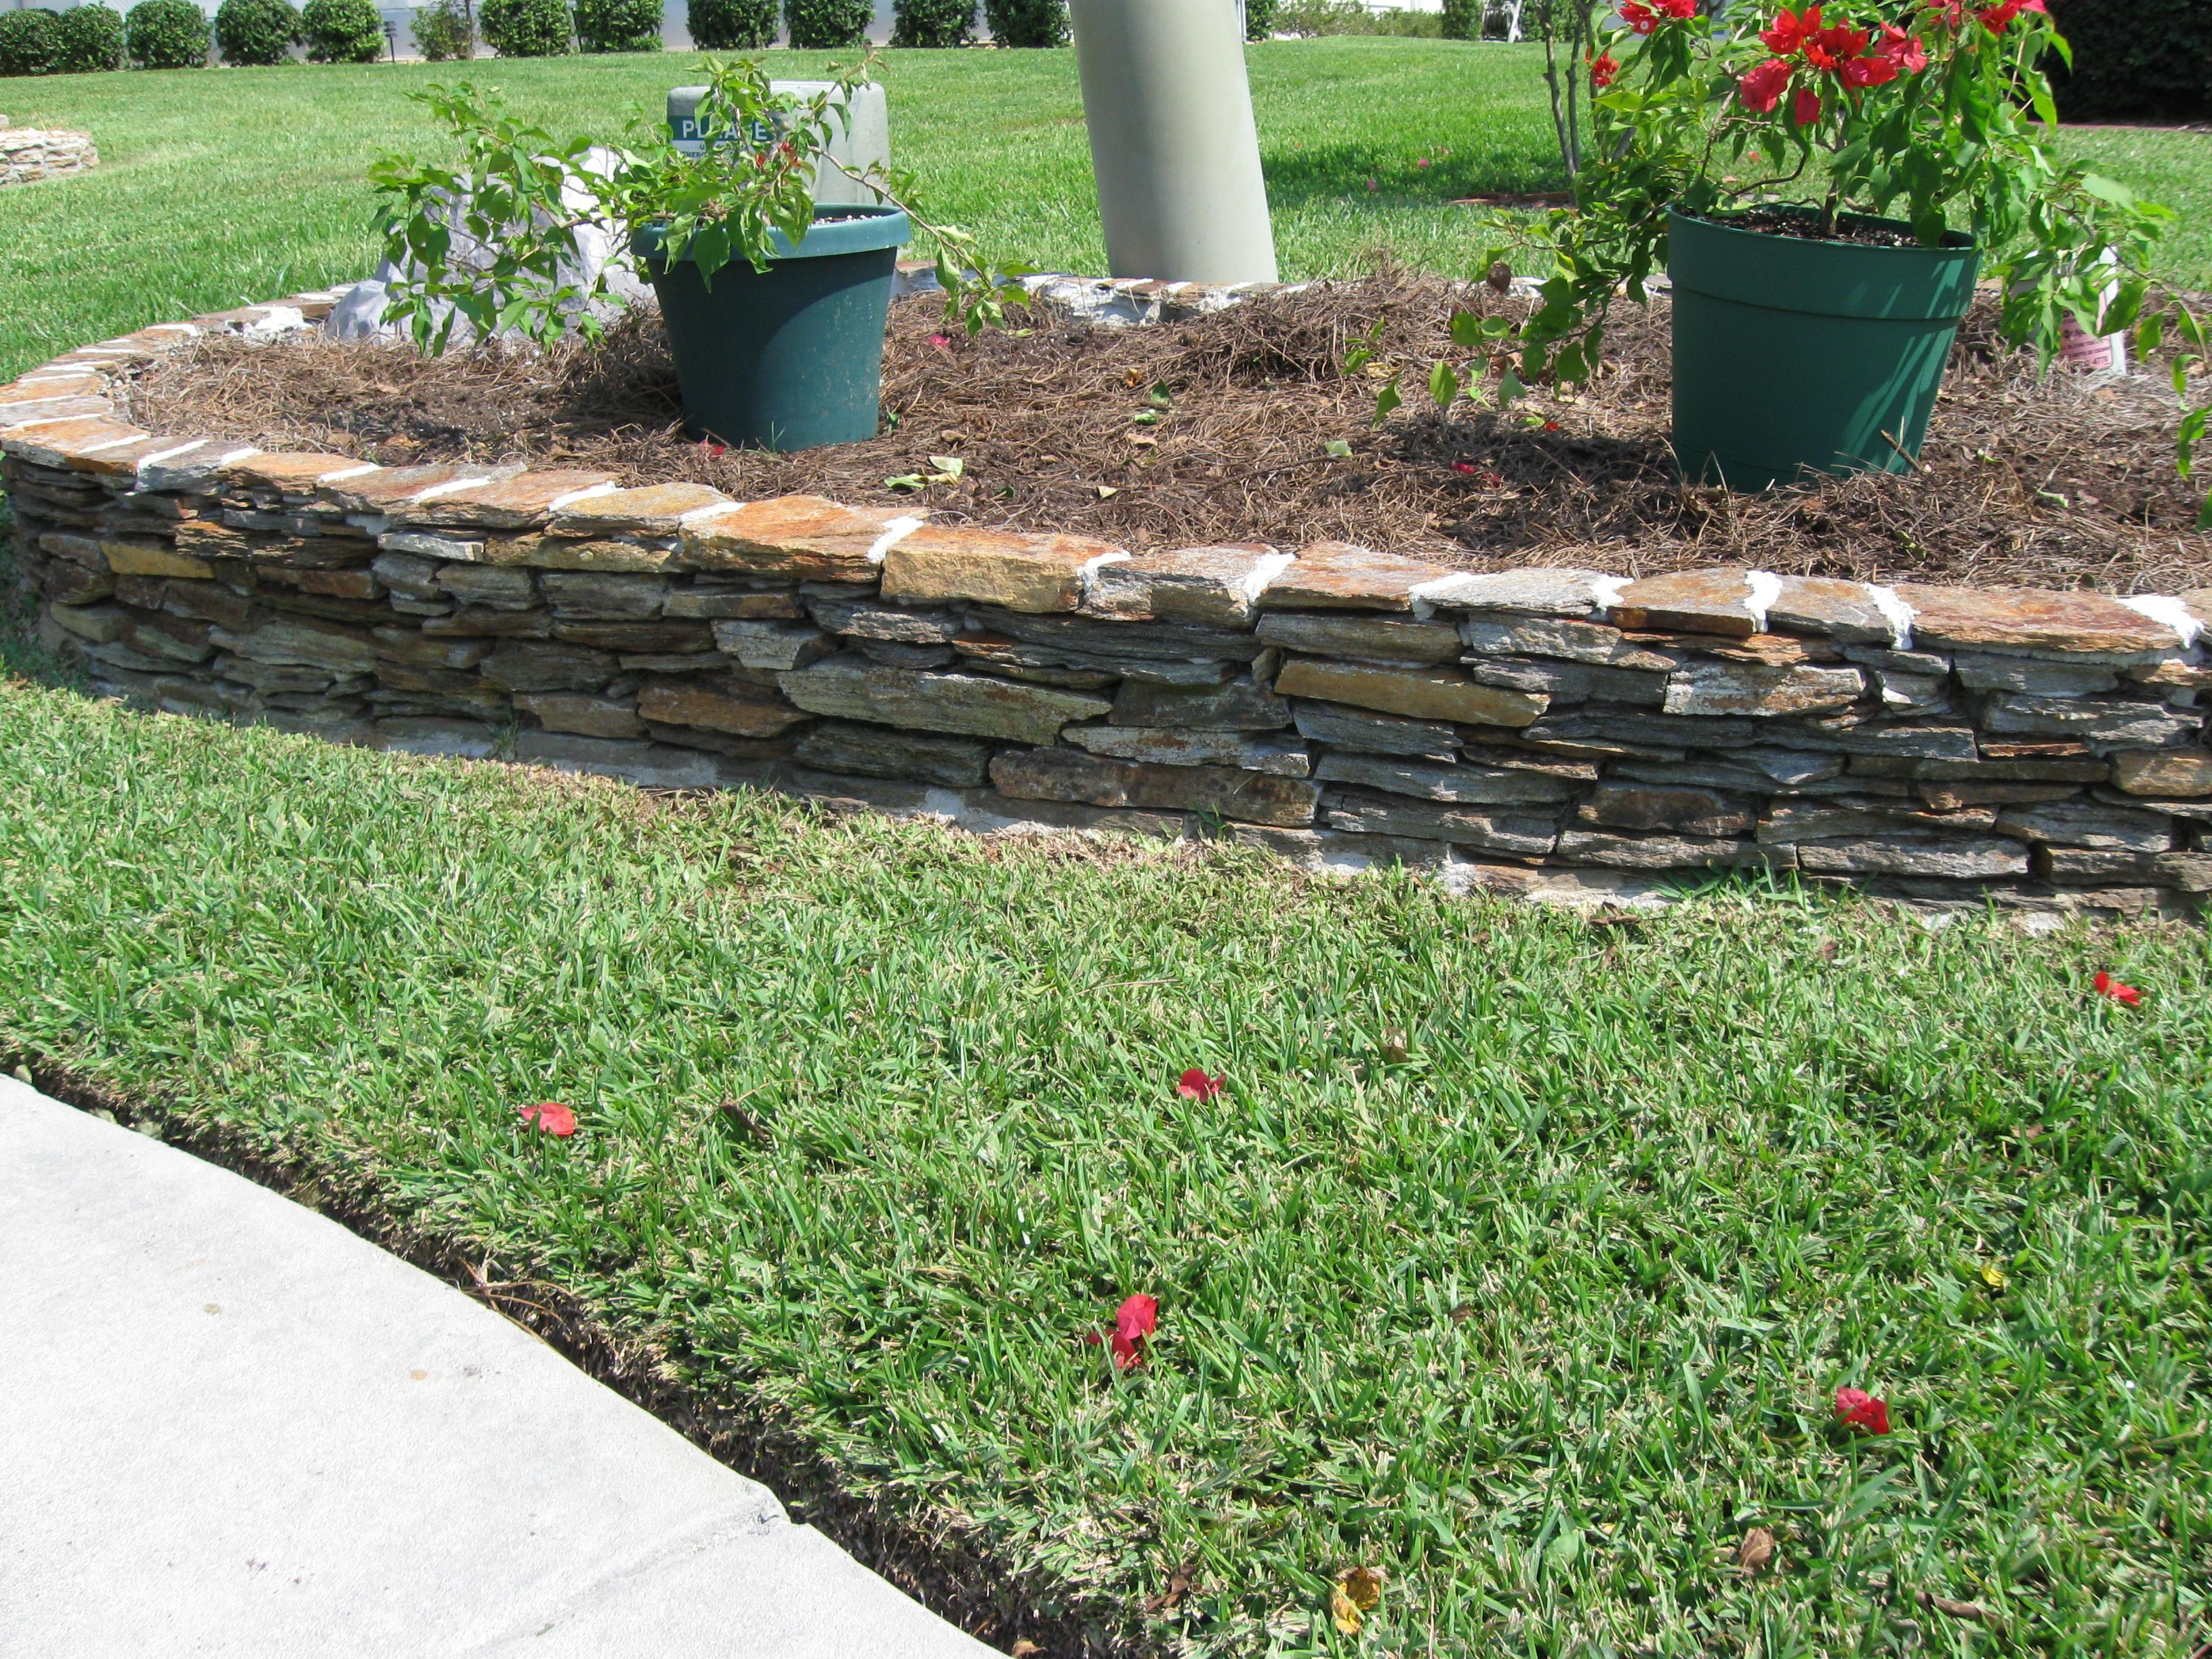 Lances Landscaping Planning Consultation Services All 640 x 480